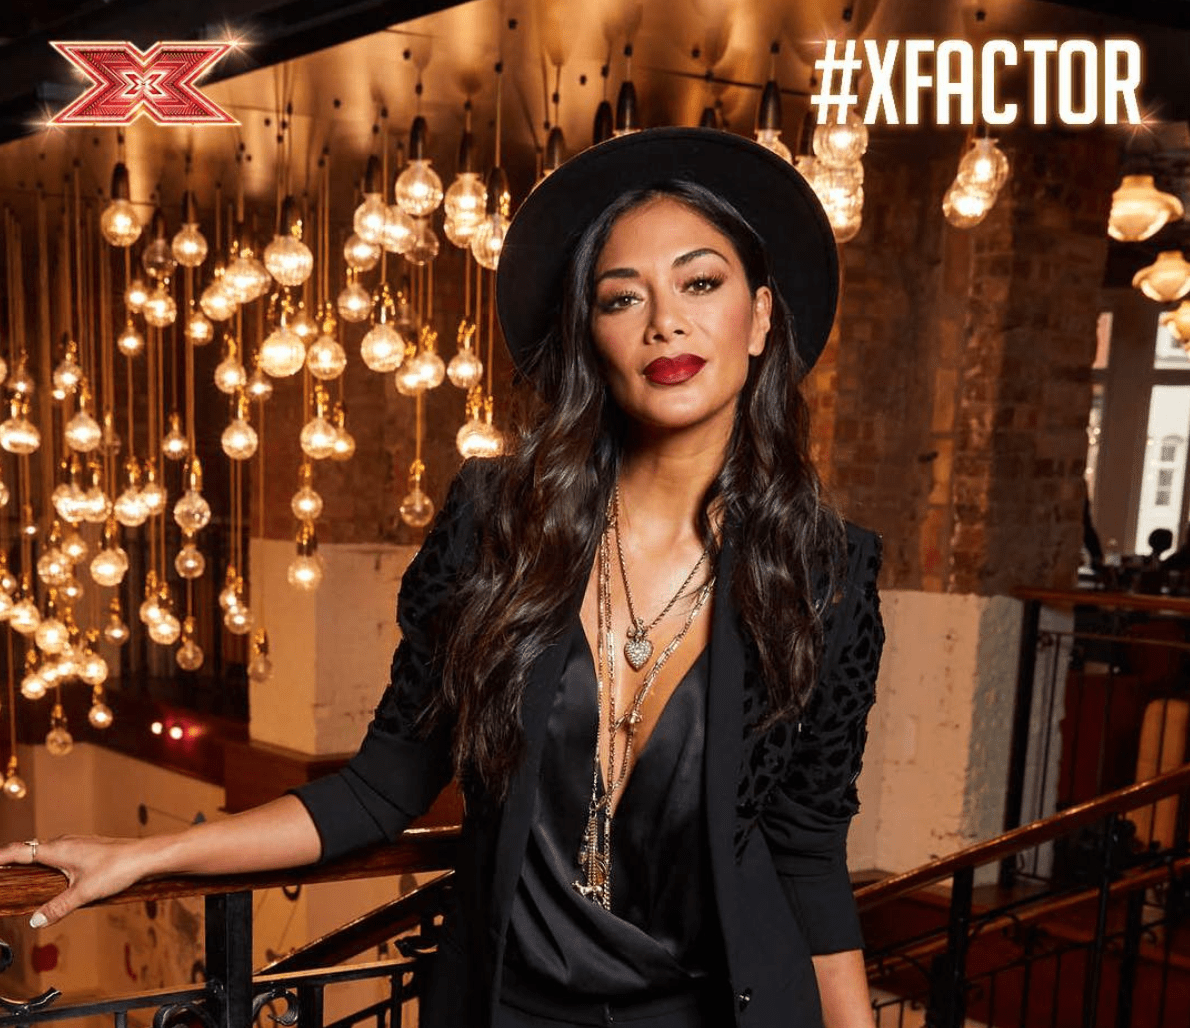 MAJOR X Factor overhaul this year could see all current judges AXED